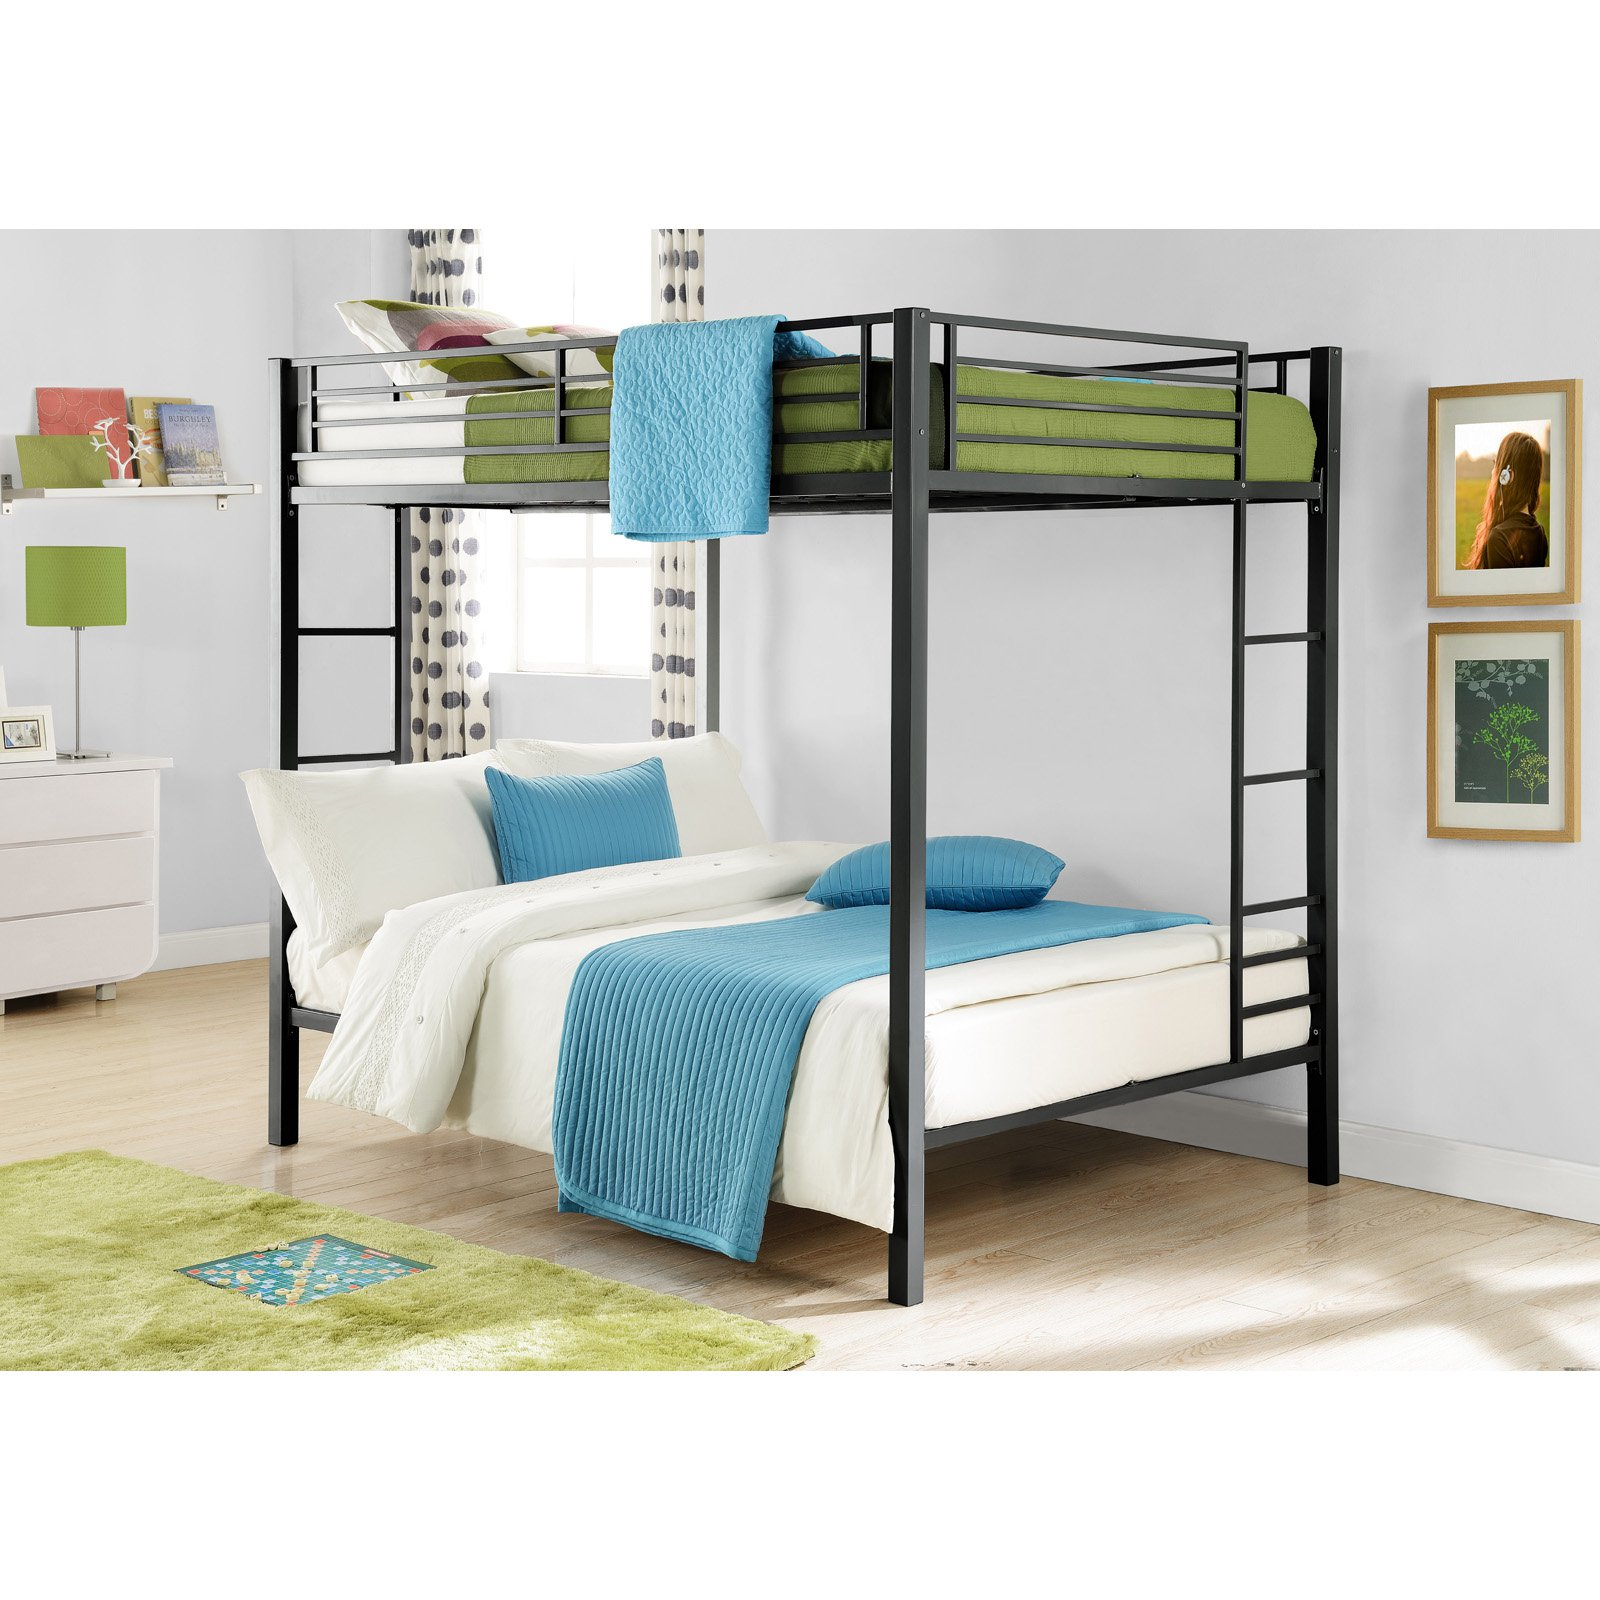 Dorel Full Over Full Metal Bunk Bed, Multiple Finishes - Walmart.com